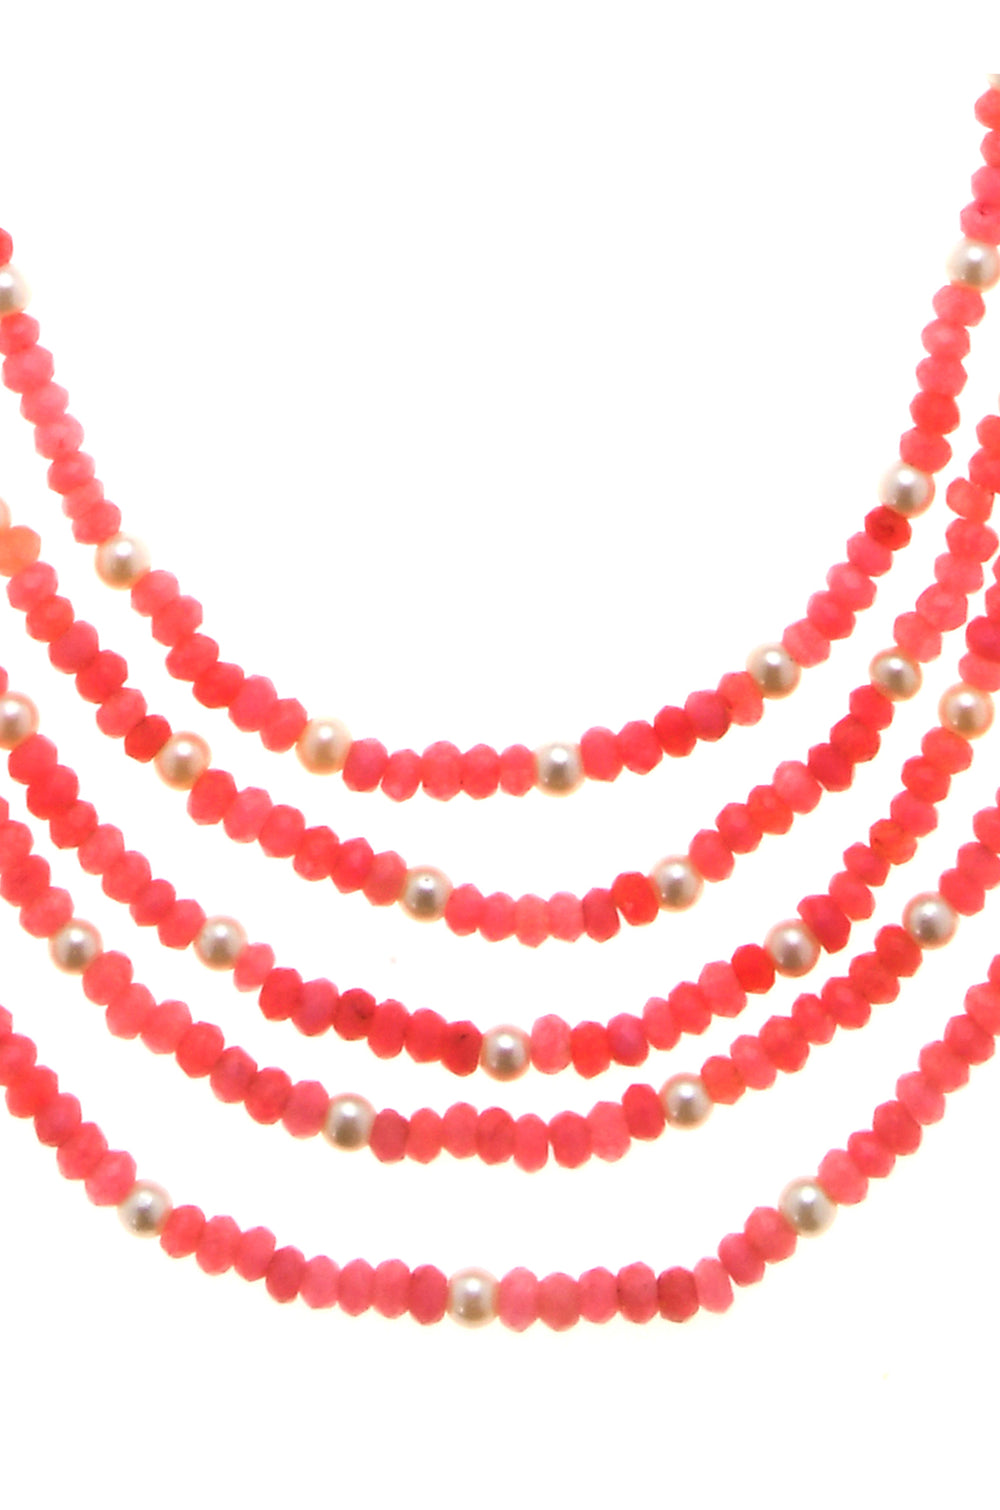 Heer Pink White Handcrafted Onyx Necklace - House of Blouse